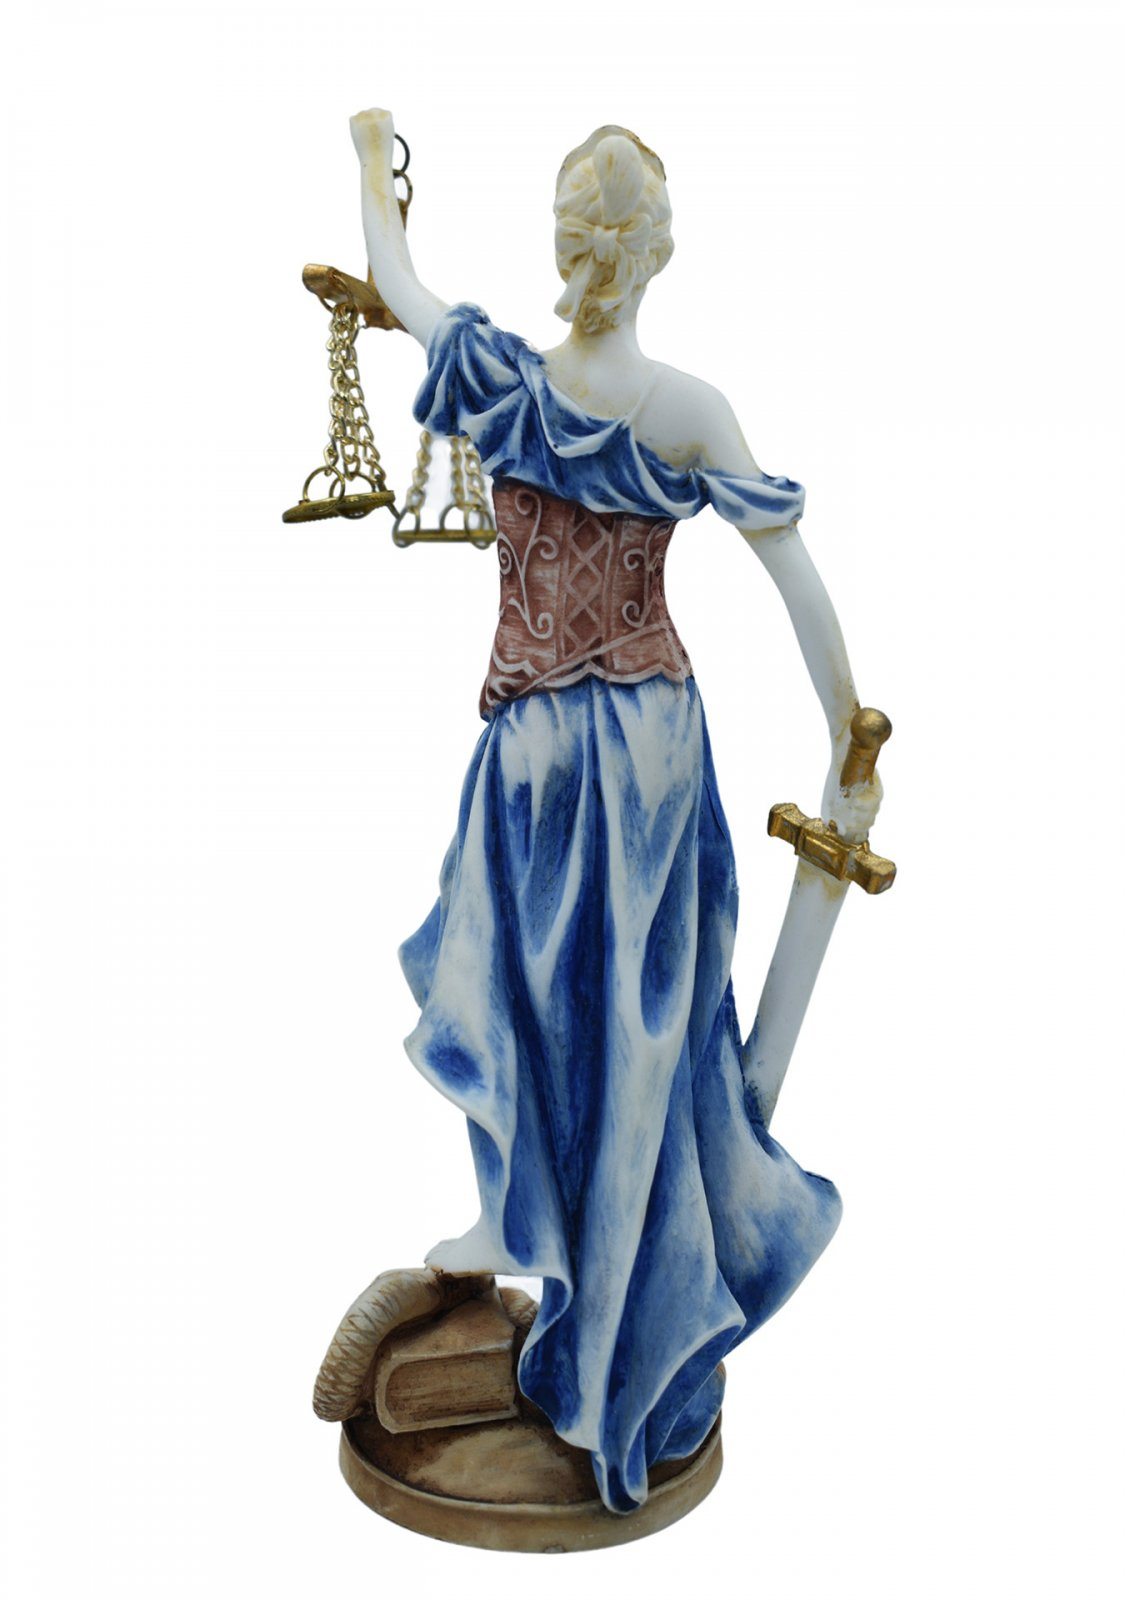 Themis, the greek goddess of justice, alabaster statue